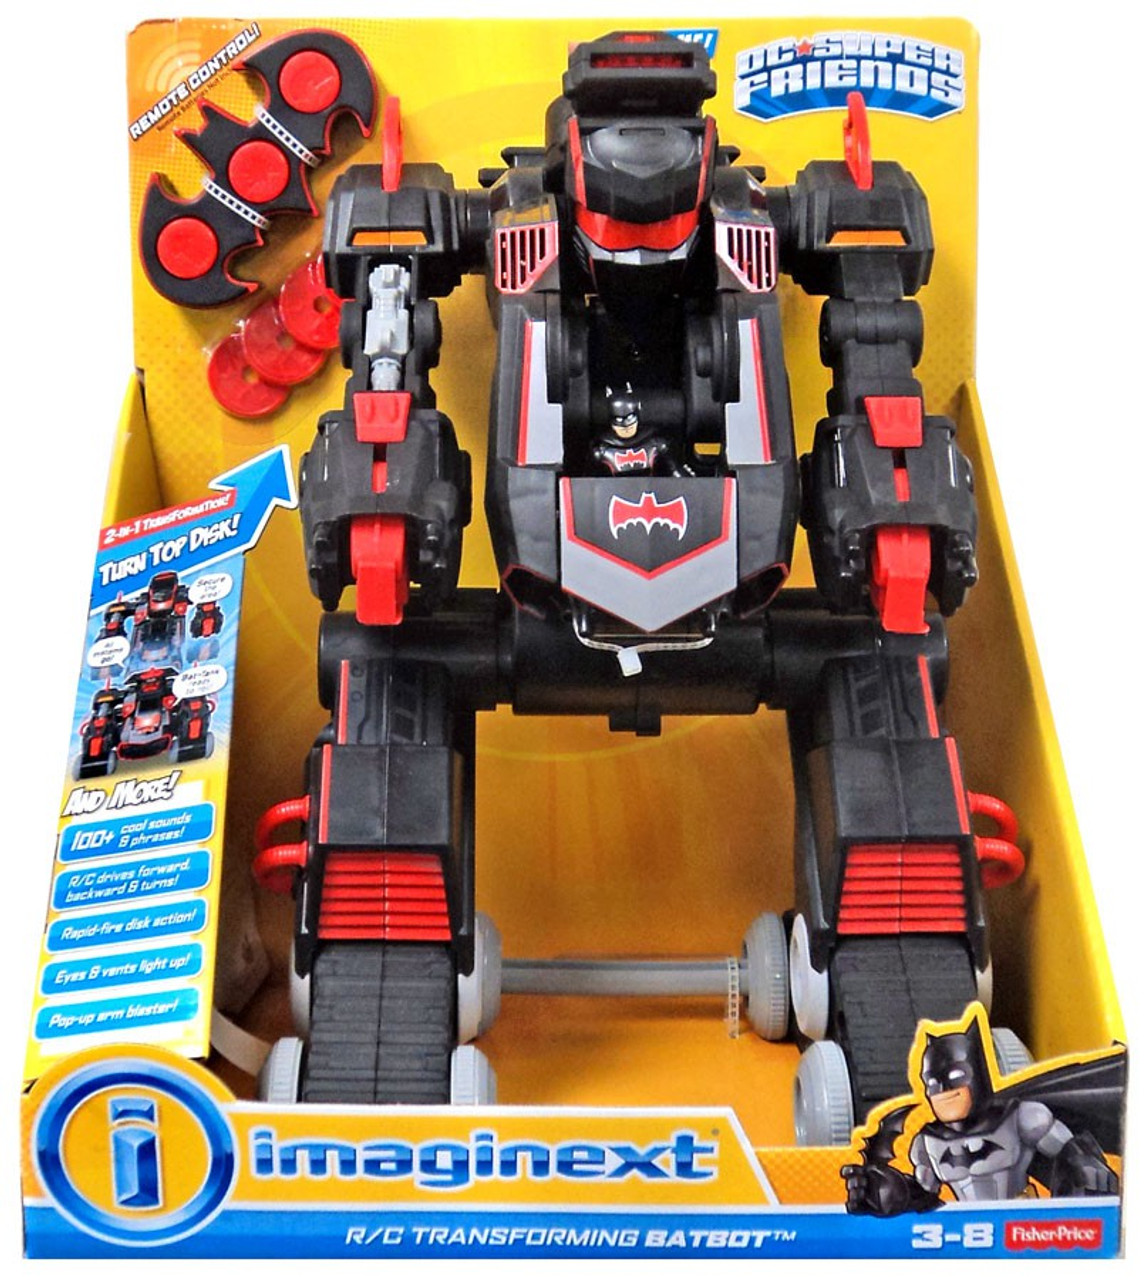 imaginext batman helicopter with Search on Watch additionally Batman Helicopter Toy additionally Imaginext Toys besides Year 2017 additionally X506yu9.